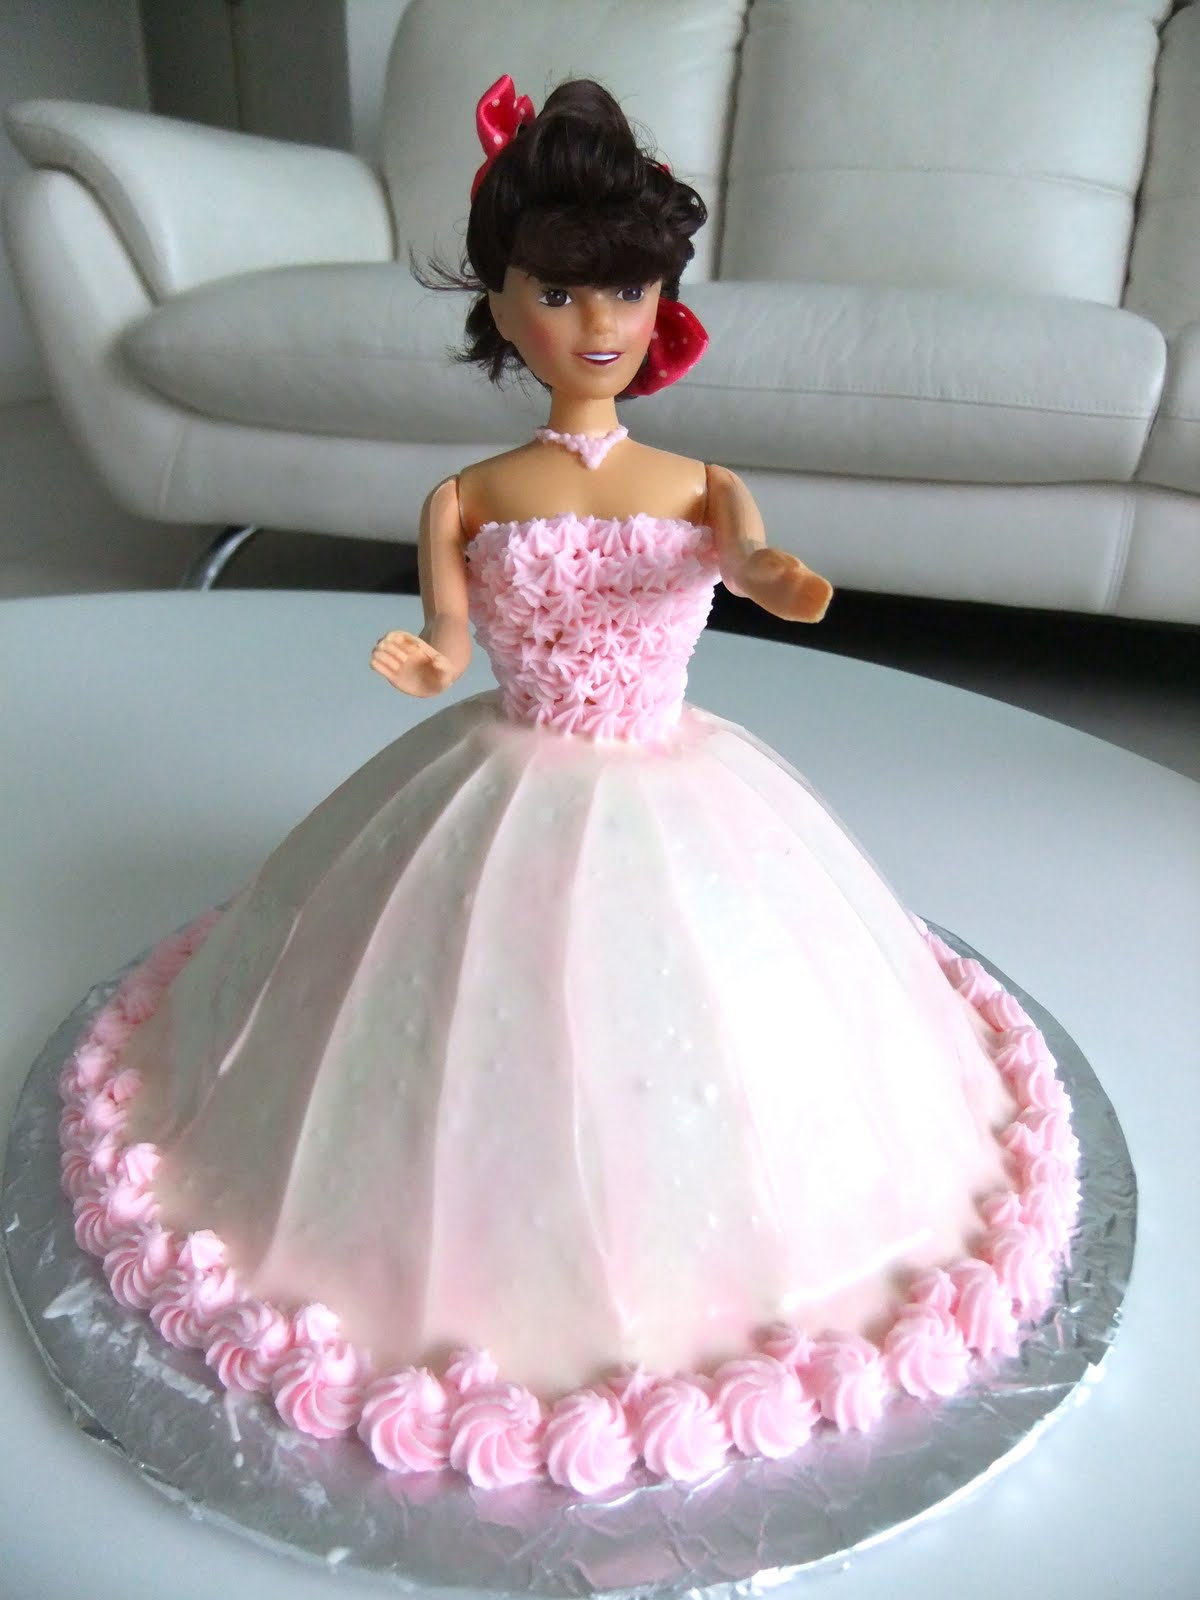 Princess Doll Cake Pictures : Prayers, Hugs & Diapers: Princess Doll Cake